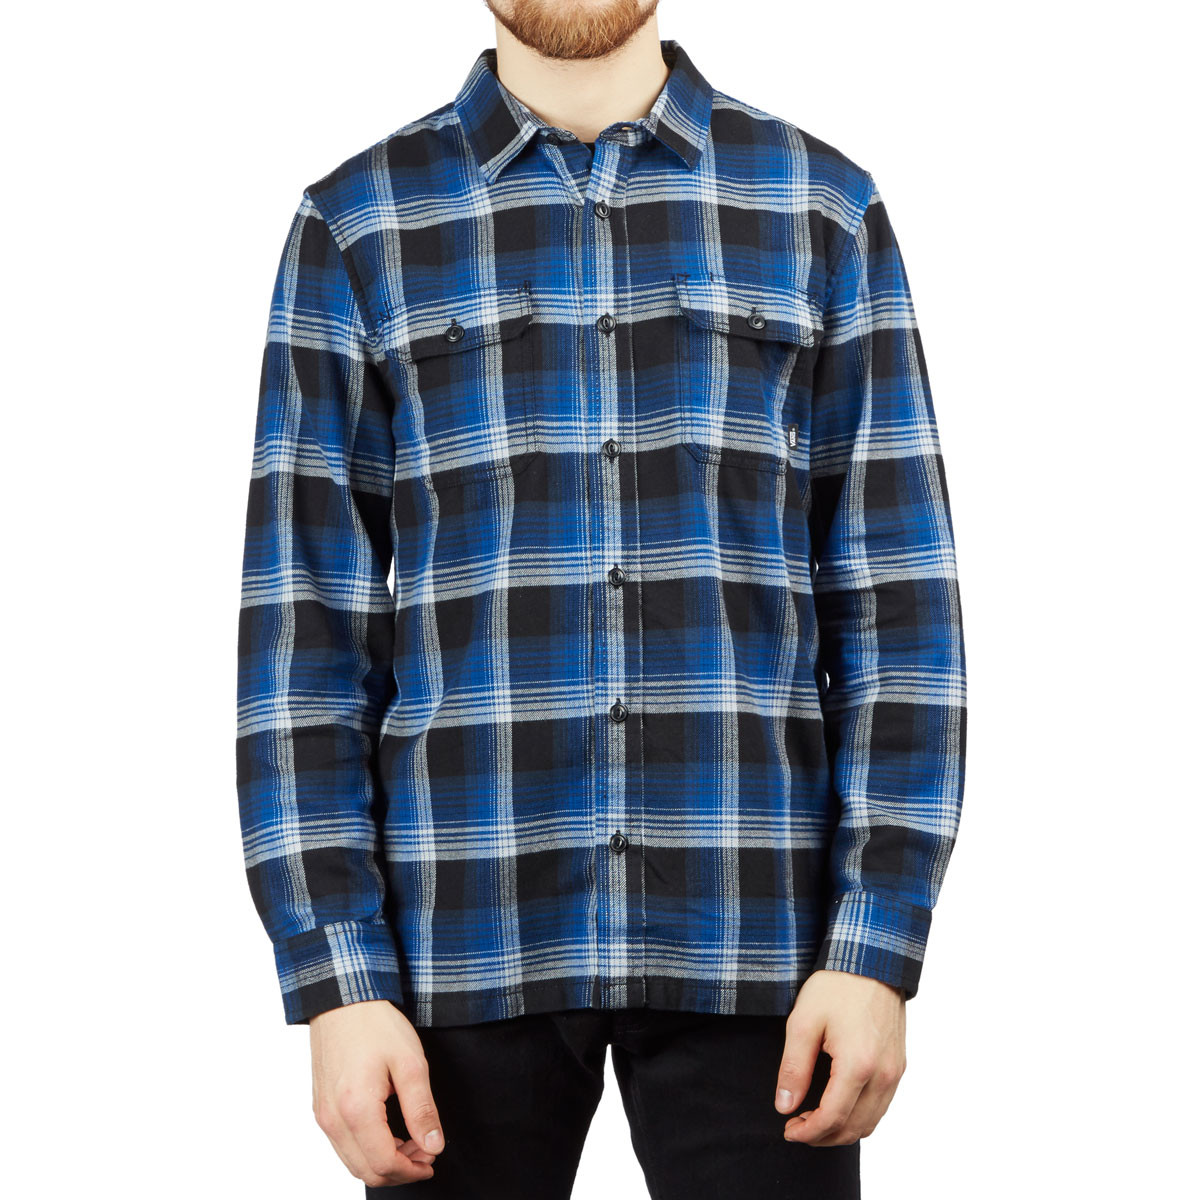 ebeabb8934 Vans x Anti-Hero Wired Flannel Shirt - True Blue/Black